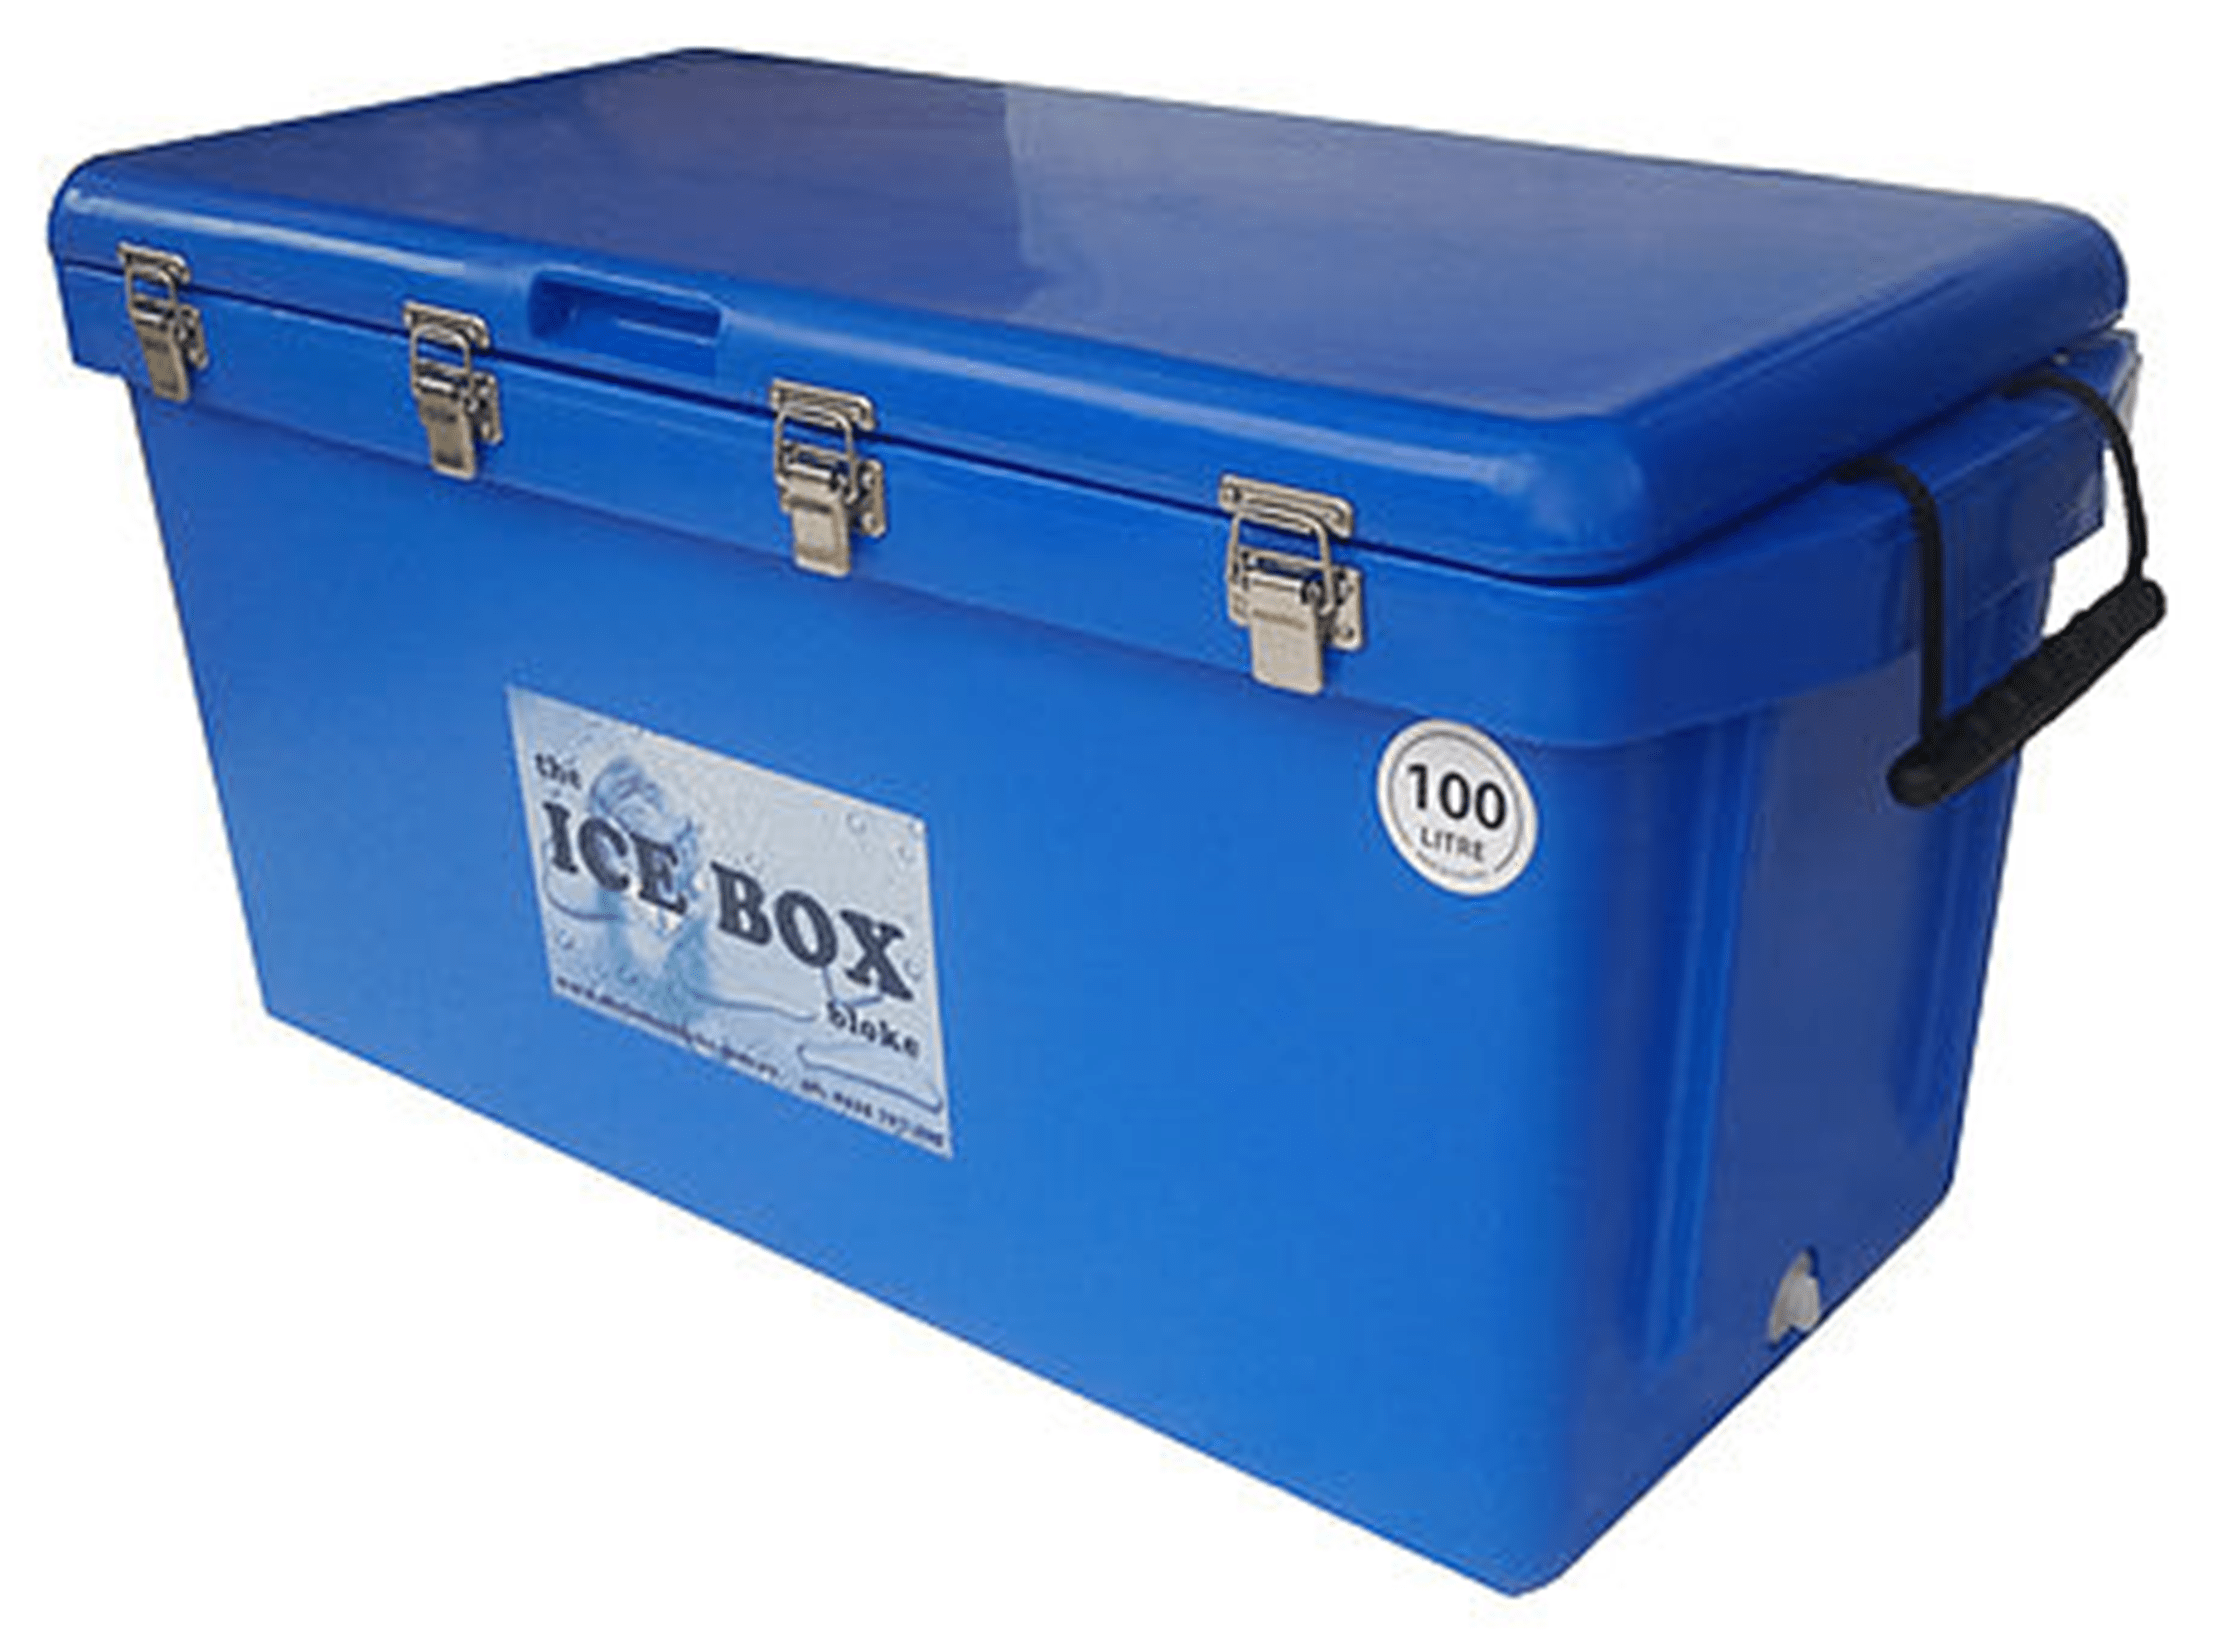 Ice Boxes Standard 100 Litre Ice Box With Hinged Lid